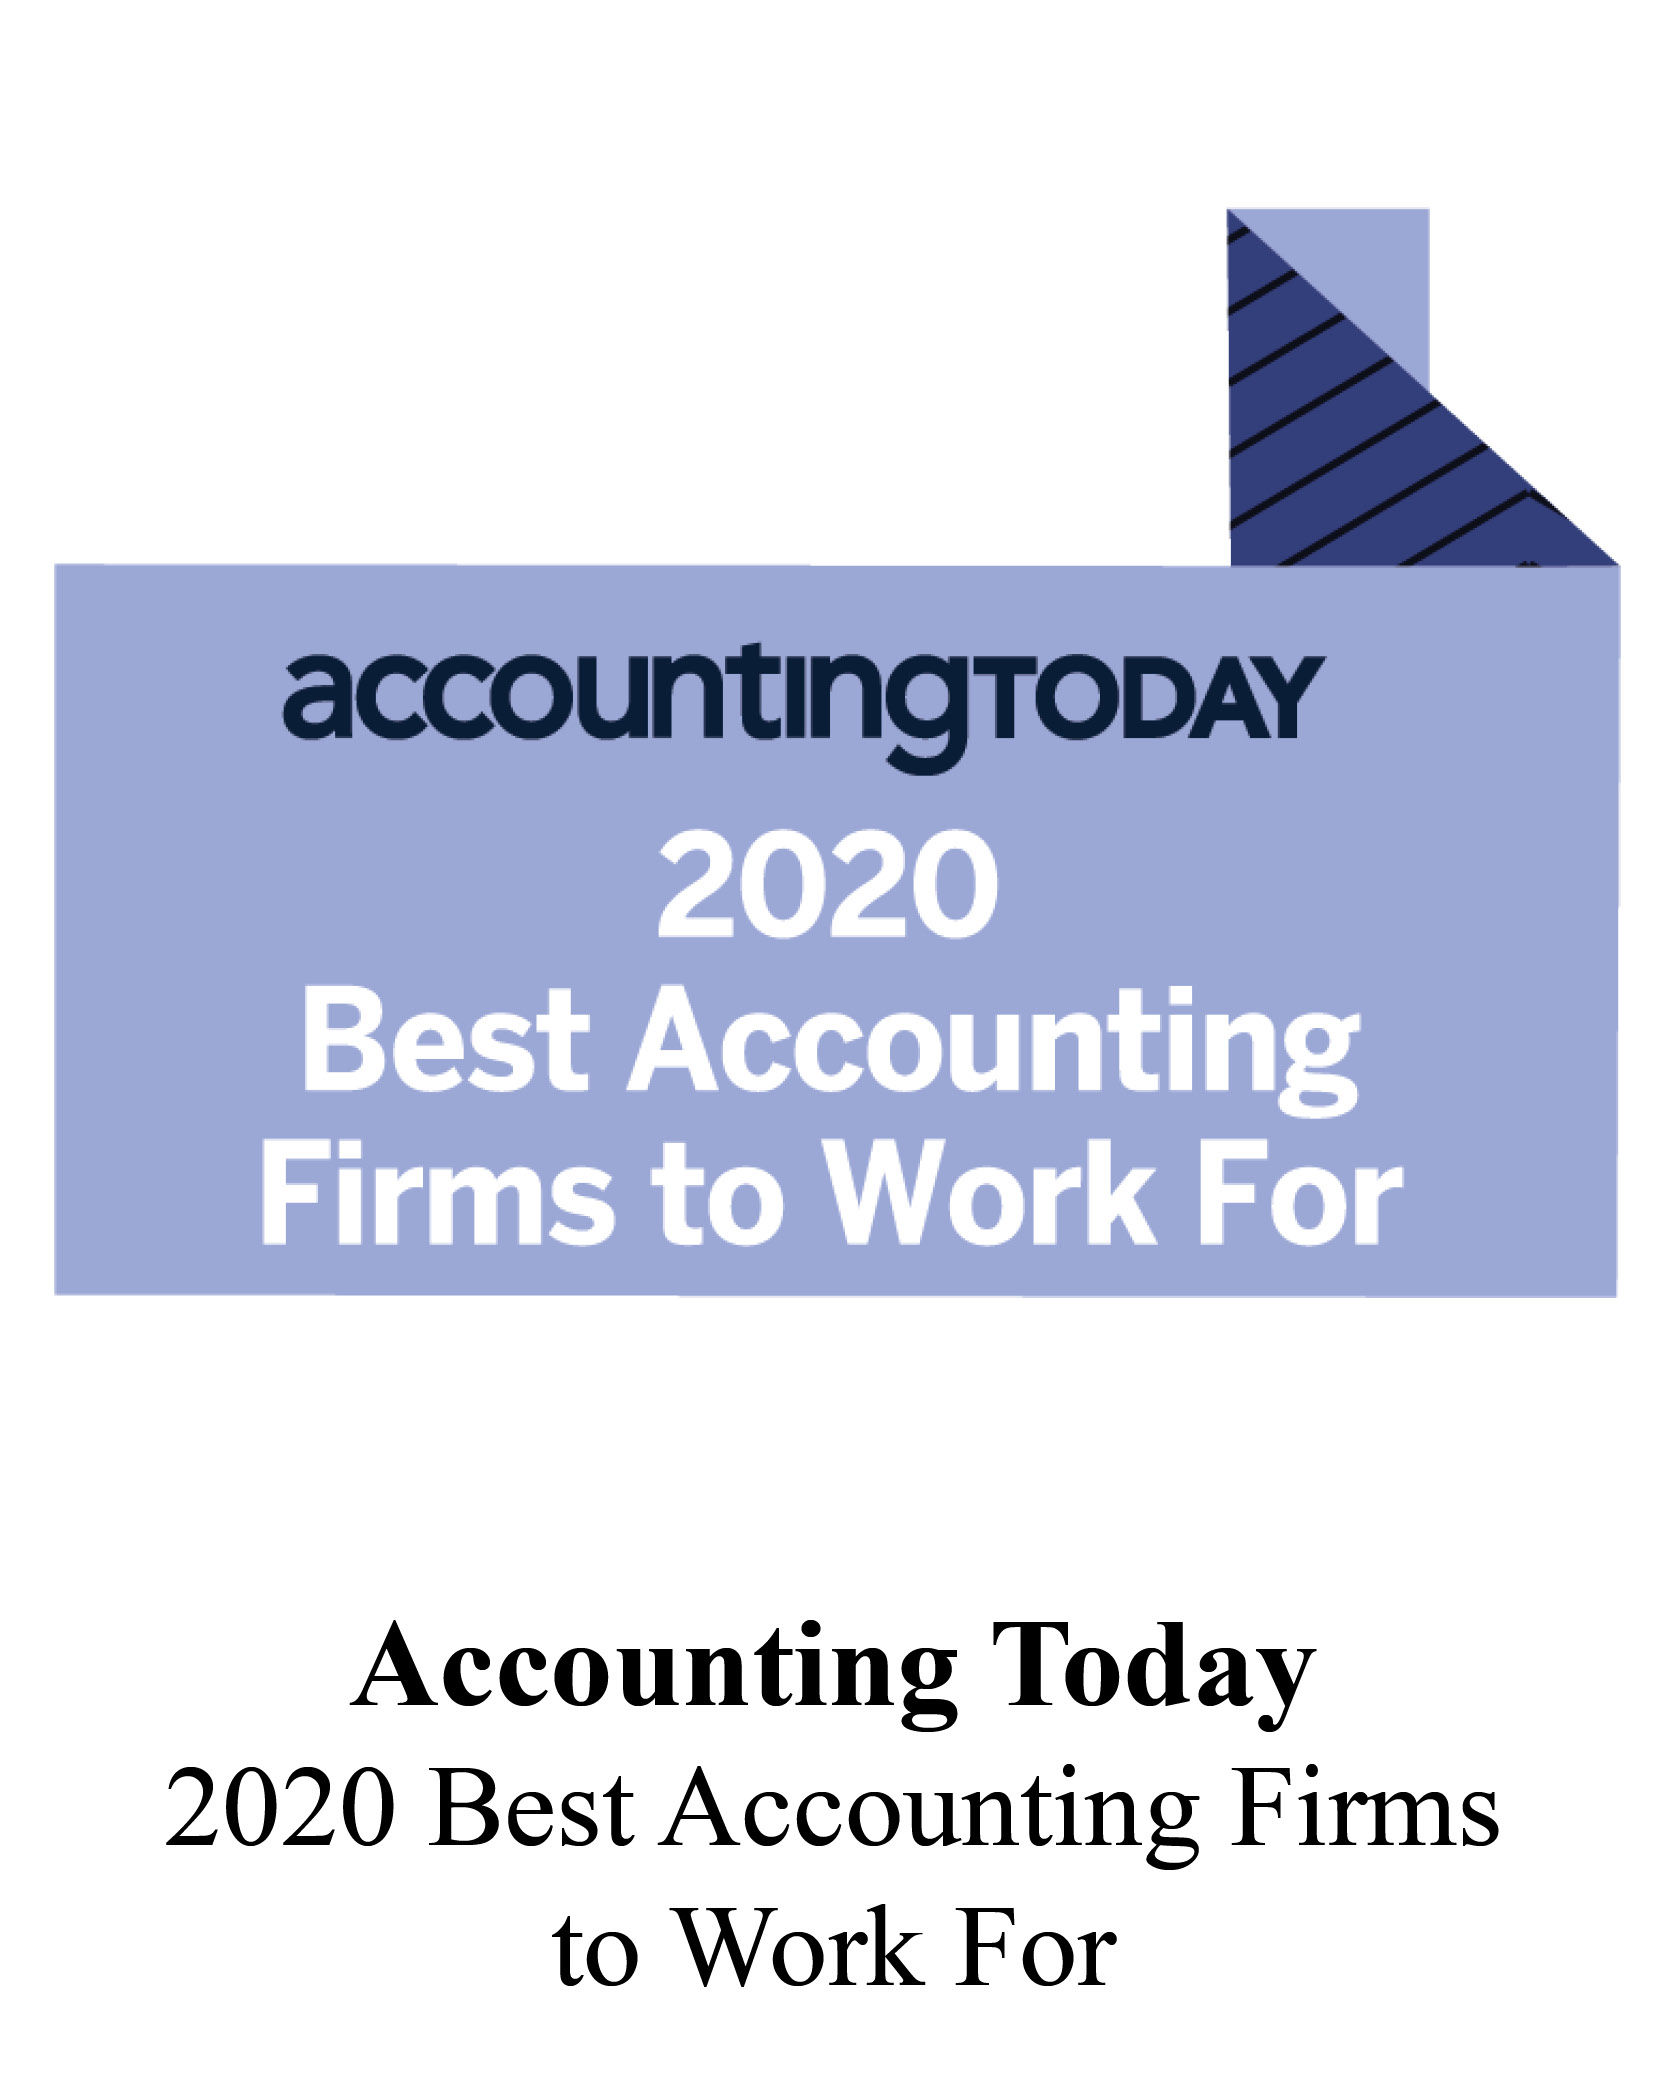 2020 Accounting Today